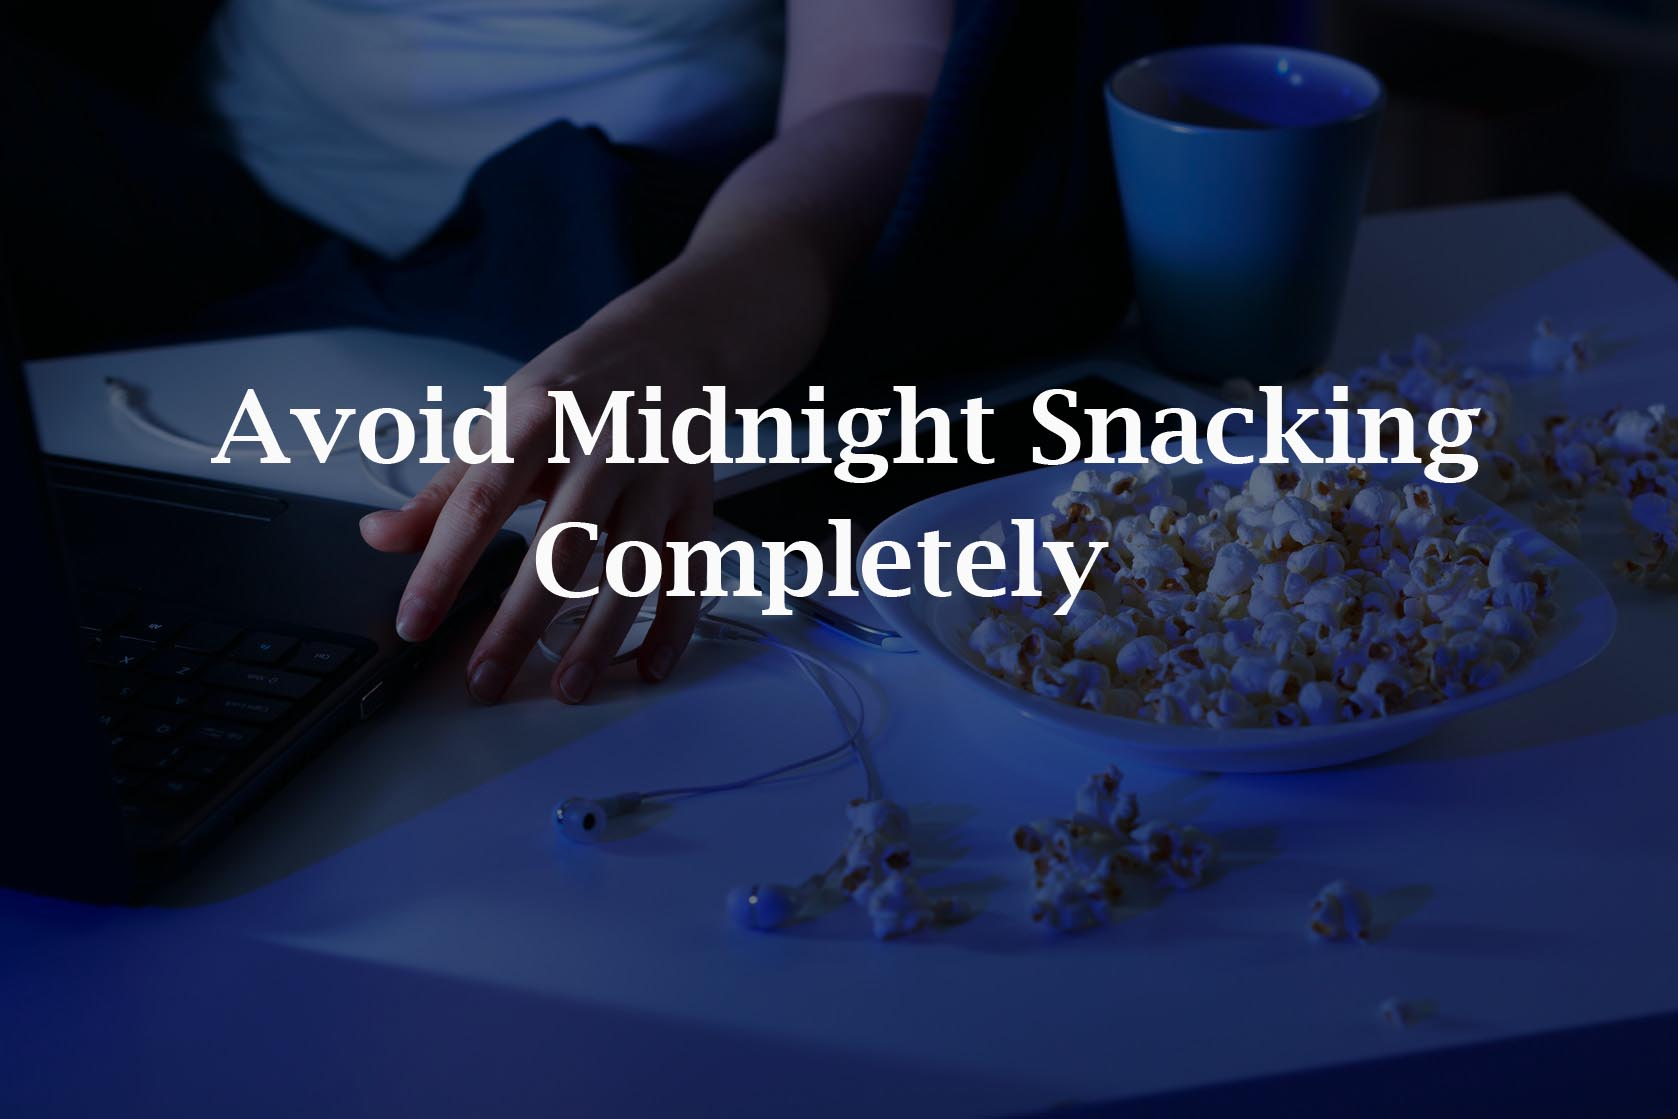 Avoid Midnight Snacking Completely